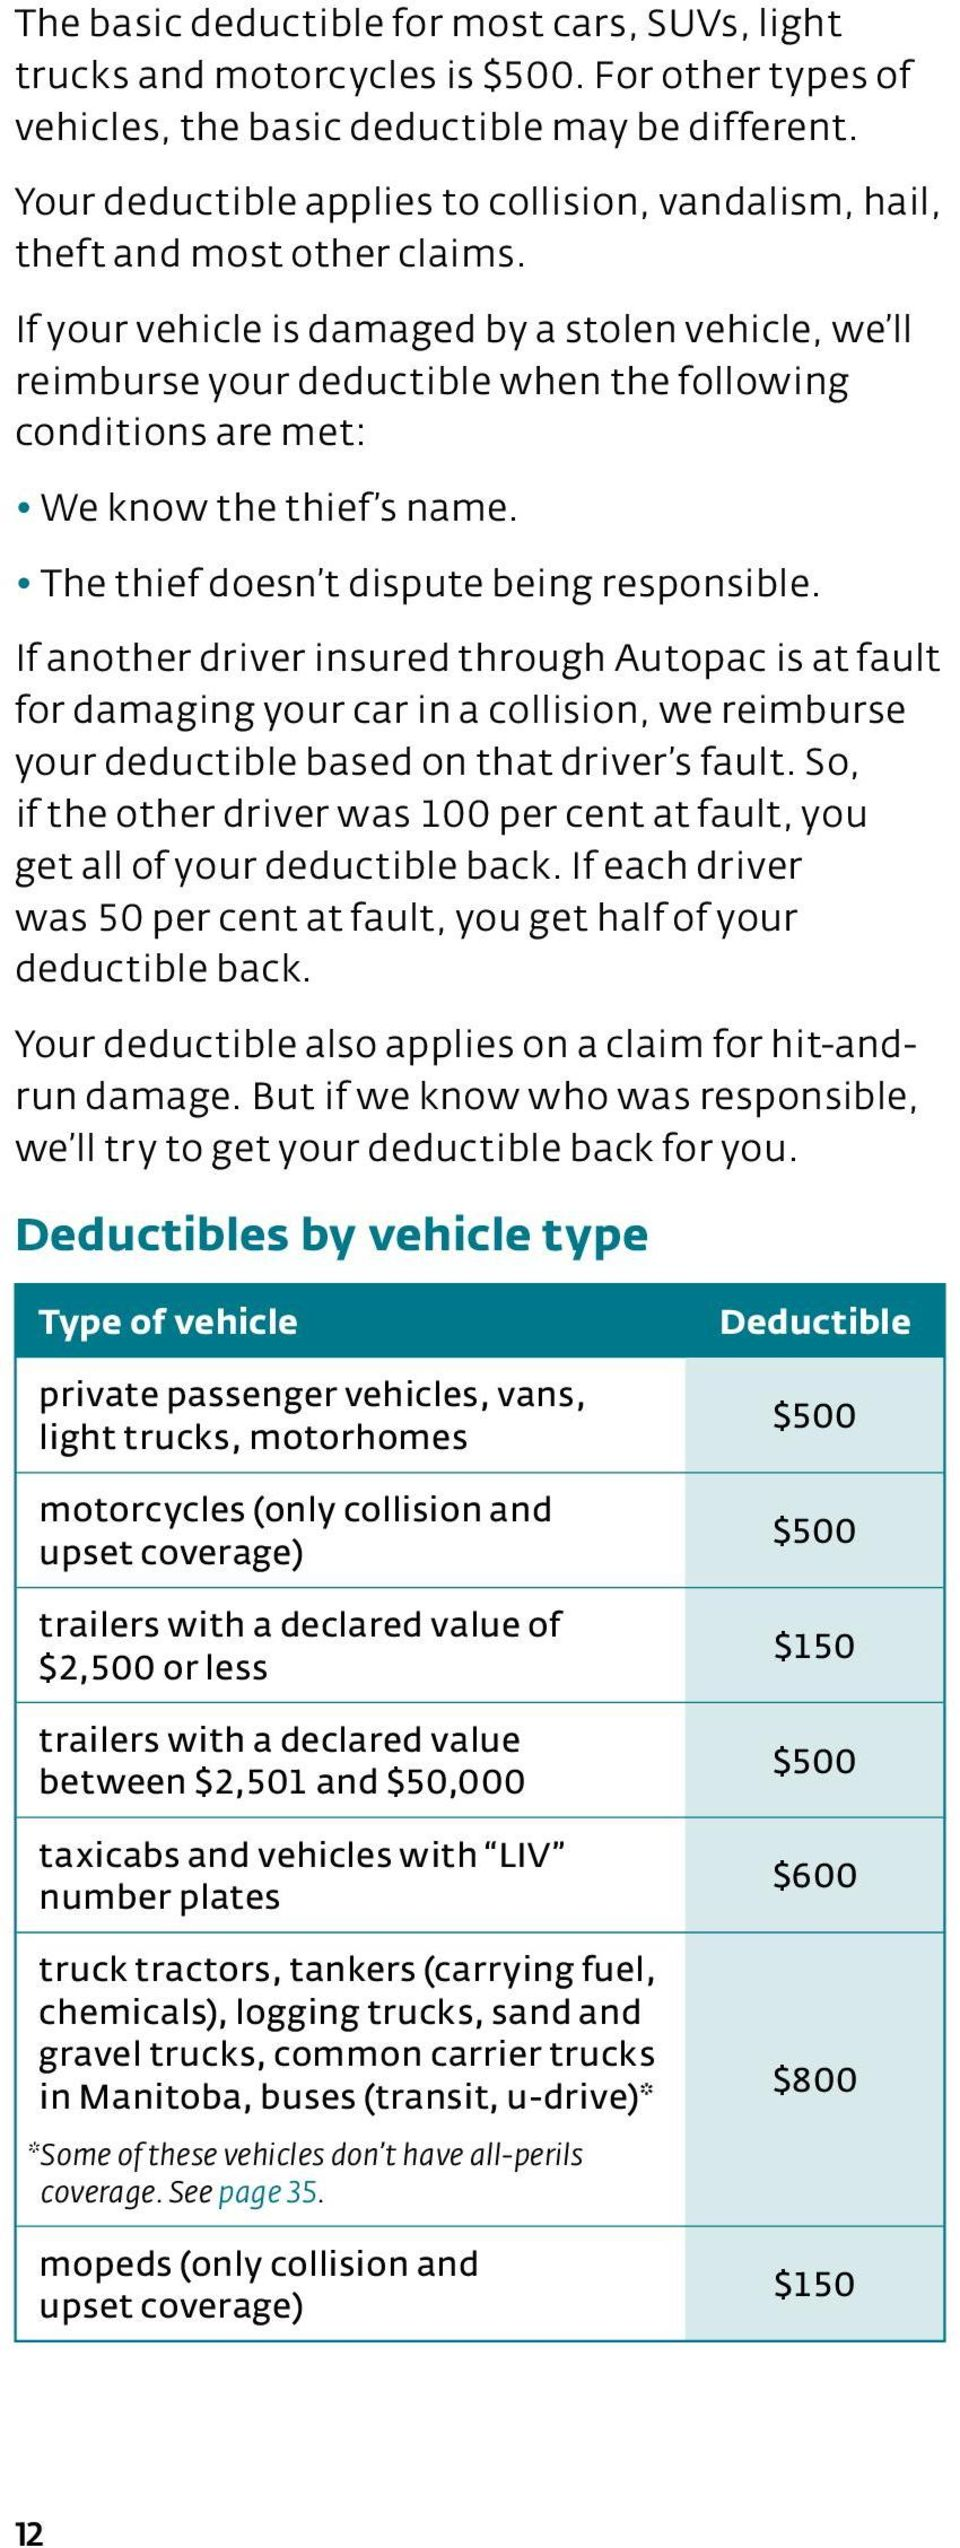 If your vehicle is damaged by a stolen vehicle, we ll reimburse your deductible when the following conditions are met: We know the thief s name. The thief doesn t dispute being responsible.